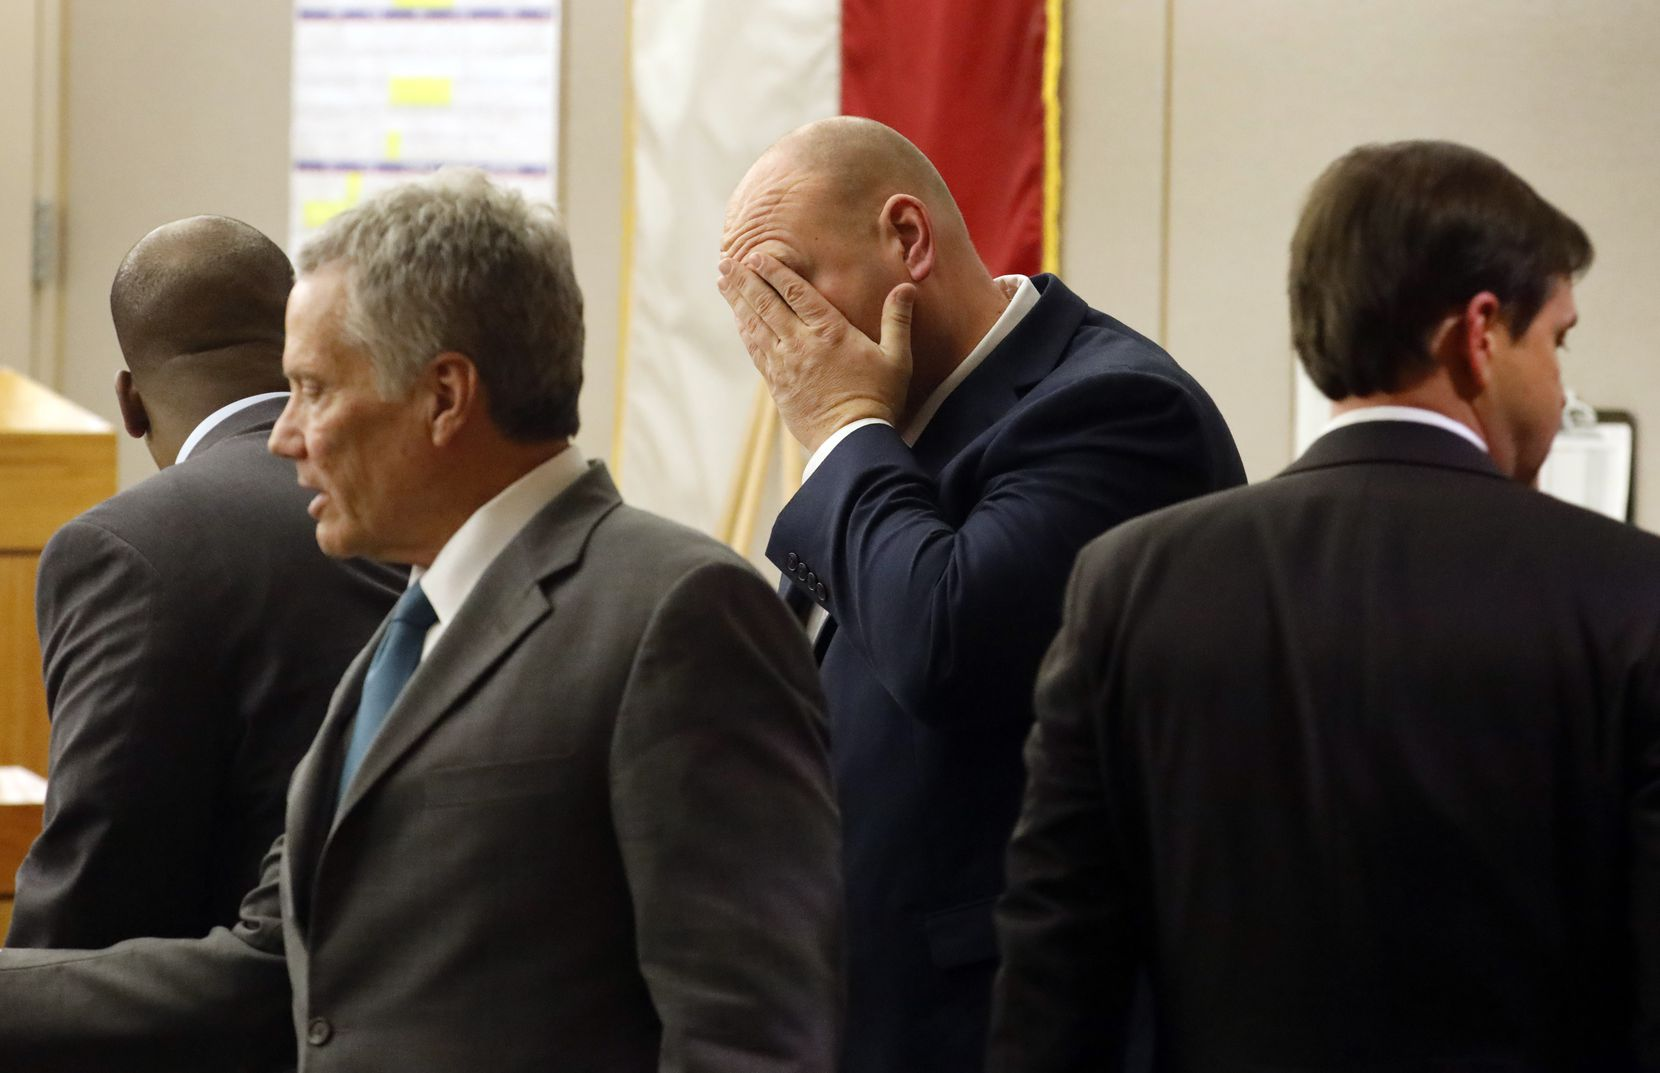 Former Dallas police officer Christopher Hess (middle) and his attorneys gathered at their desk before a lunch break in his aggravated assault trial in the 292nd District Court at the Frank Crowley Courts Building in Dallas Thursday, February 6, 2020. He's accused of the 2017 fatal shooting of 21-year-old Genevive Dawes. (Tom Fox/The Dallas Morning News)